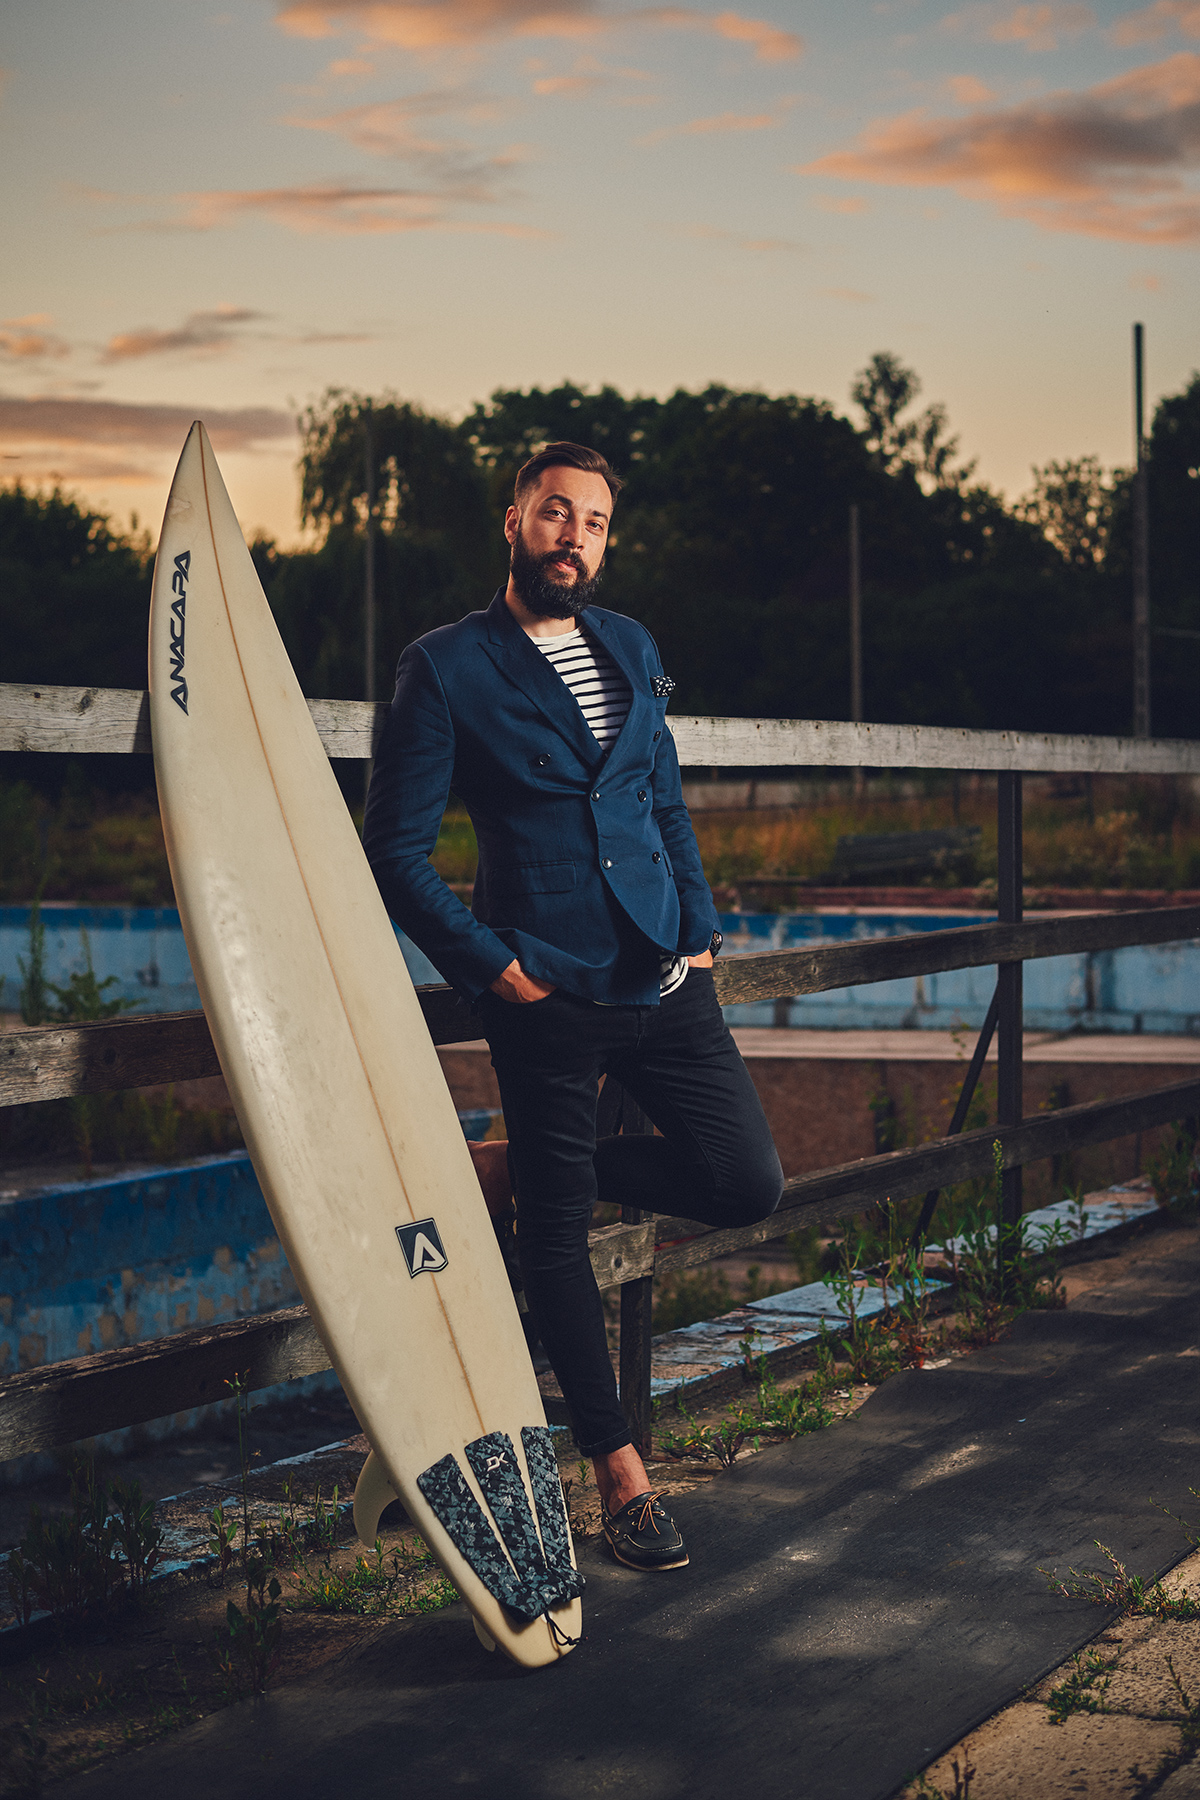 Picture of Son of a Beach blogger wearing double-brested jacket with surfboard next to him and sunset behind him